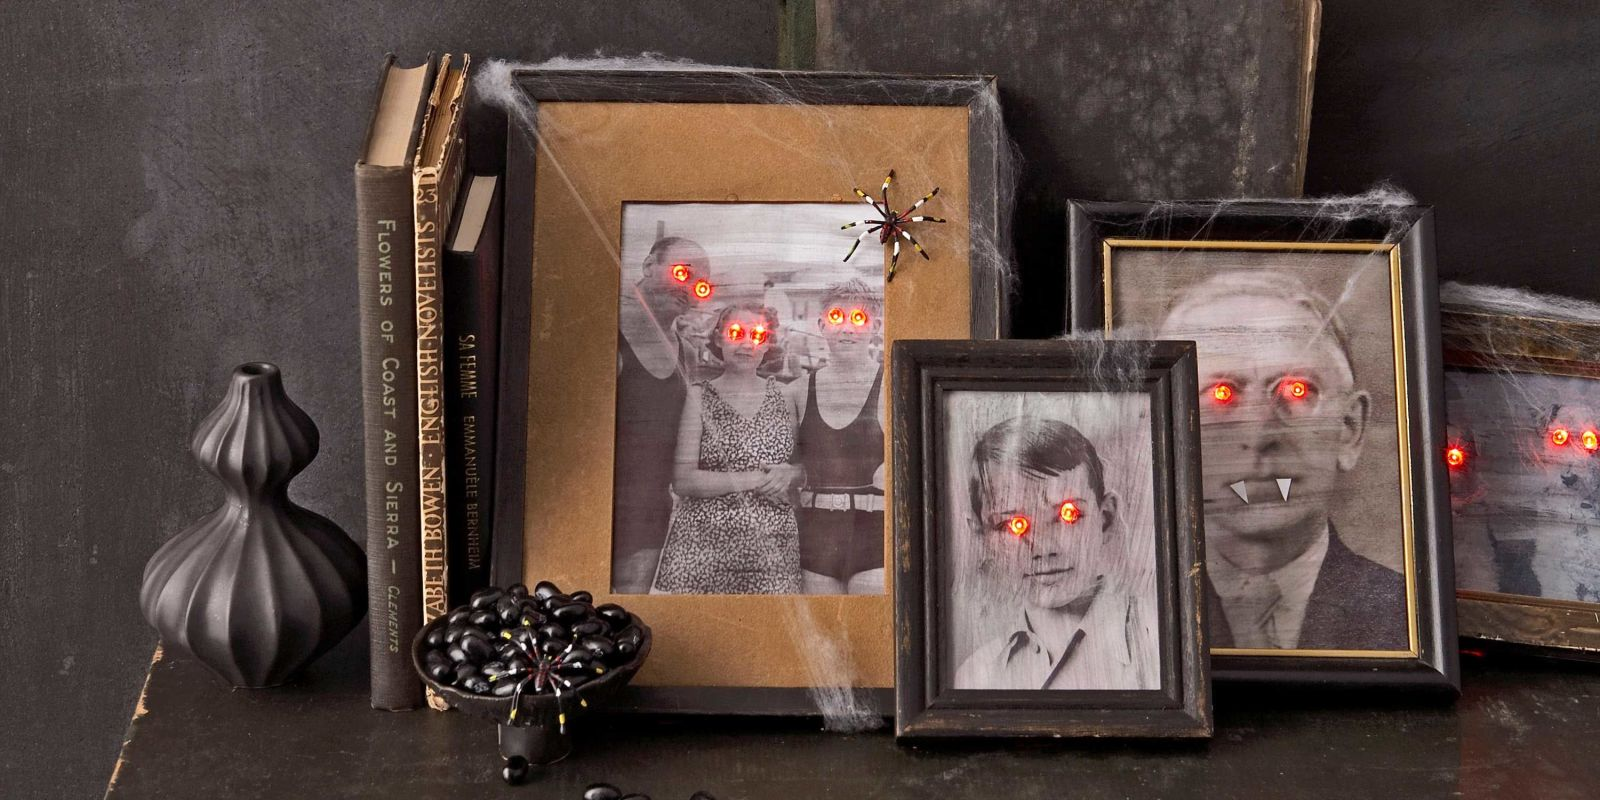 scary halloween decorations craft ideas for halloween. Black Bedroom Furniture Sets. Home Design Ideas